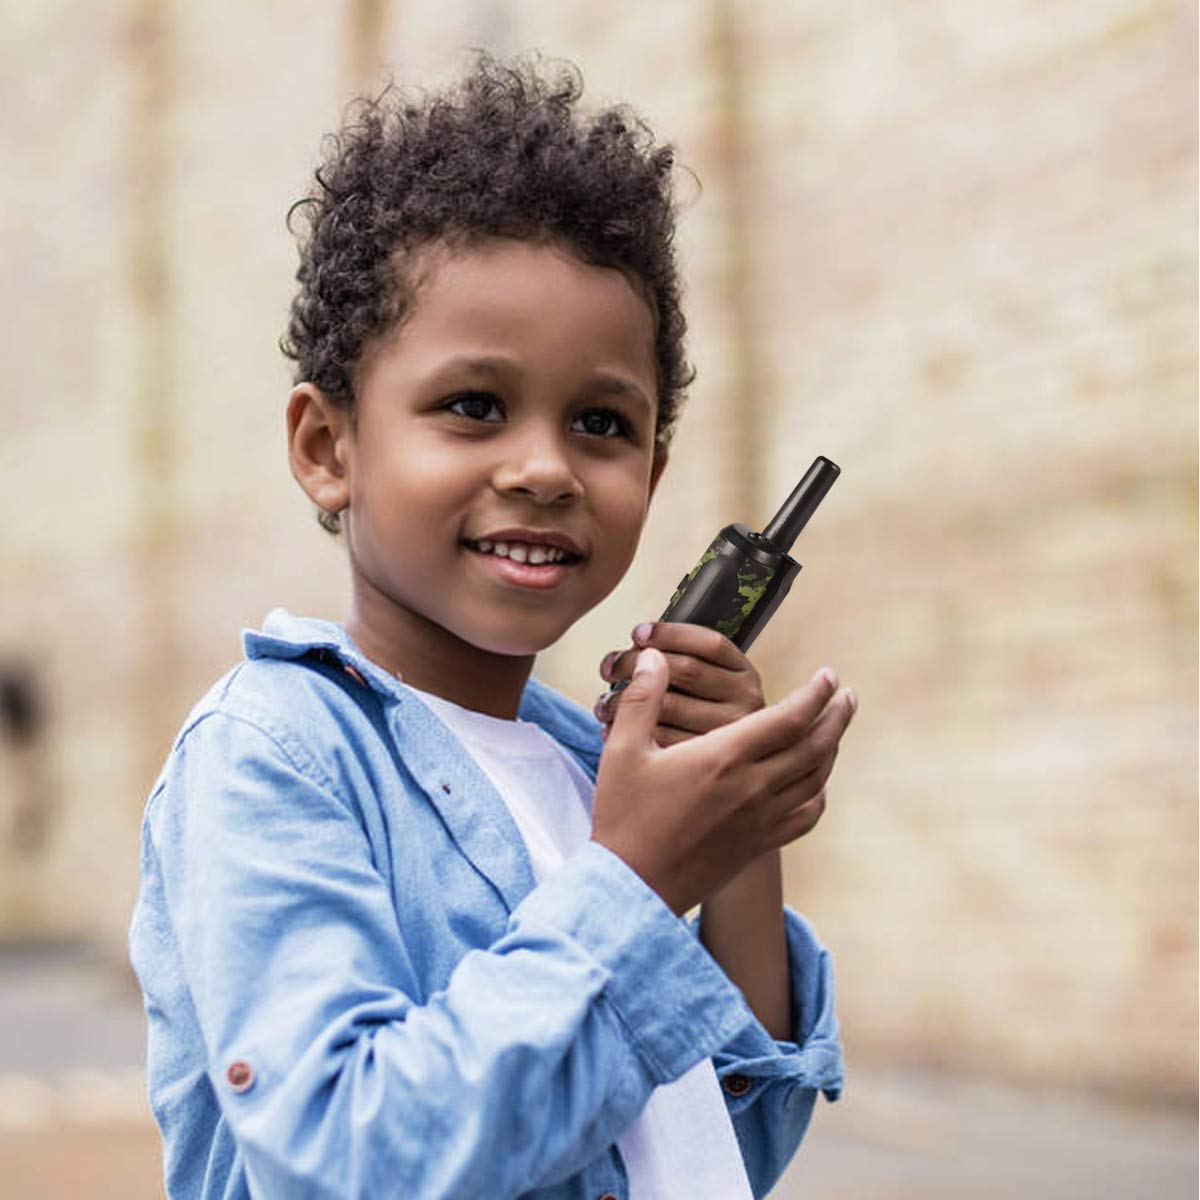 Walkie Talkies for Kids, Toys for 3-12 Year Old Boys 22 Channel 3 Mile Long Range Kids Toys and Kids Walkie Talkies, and Top Toys for for 3 4 5 6 7 8 9 Year Old Boy and Girls by UOKOO (Image #5)